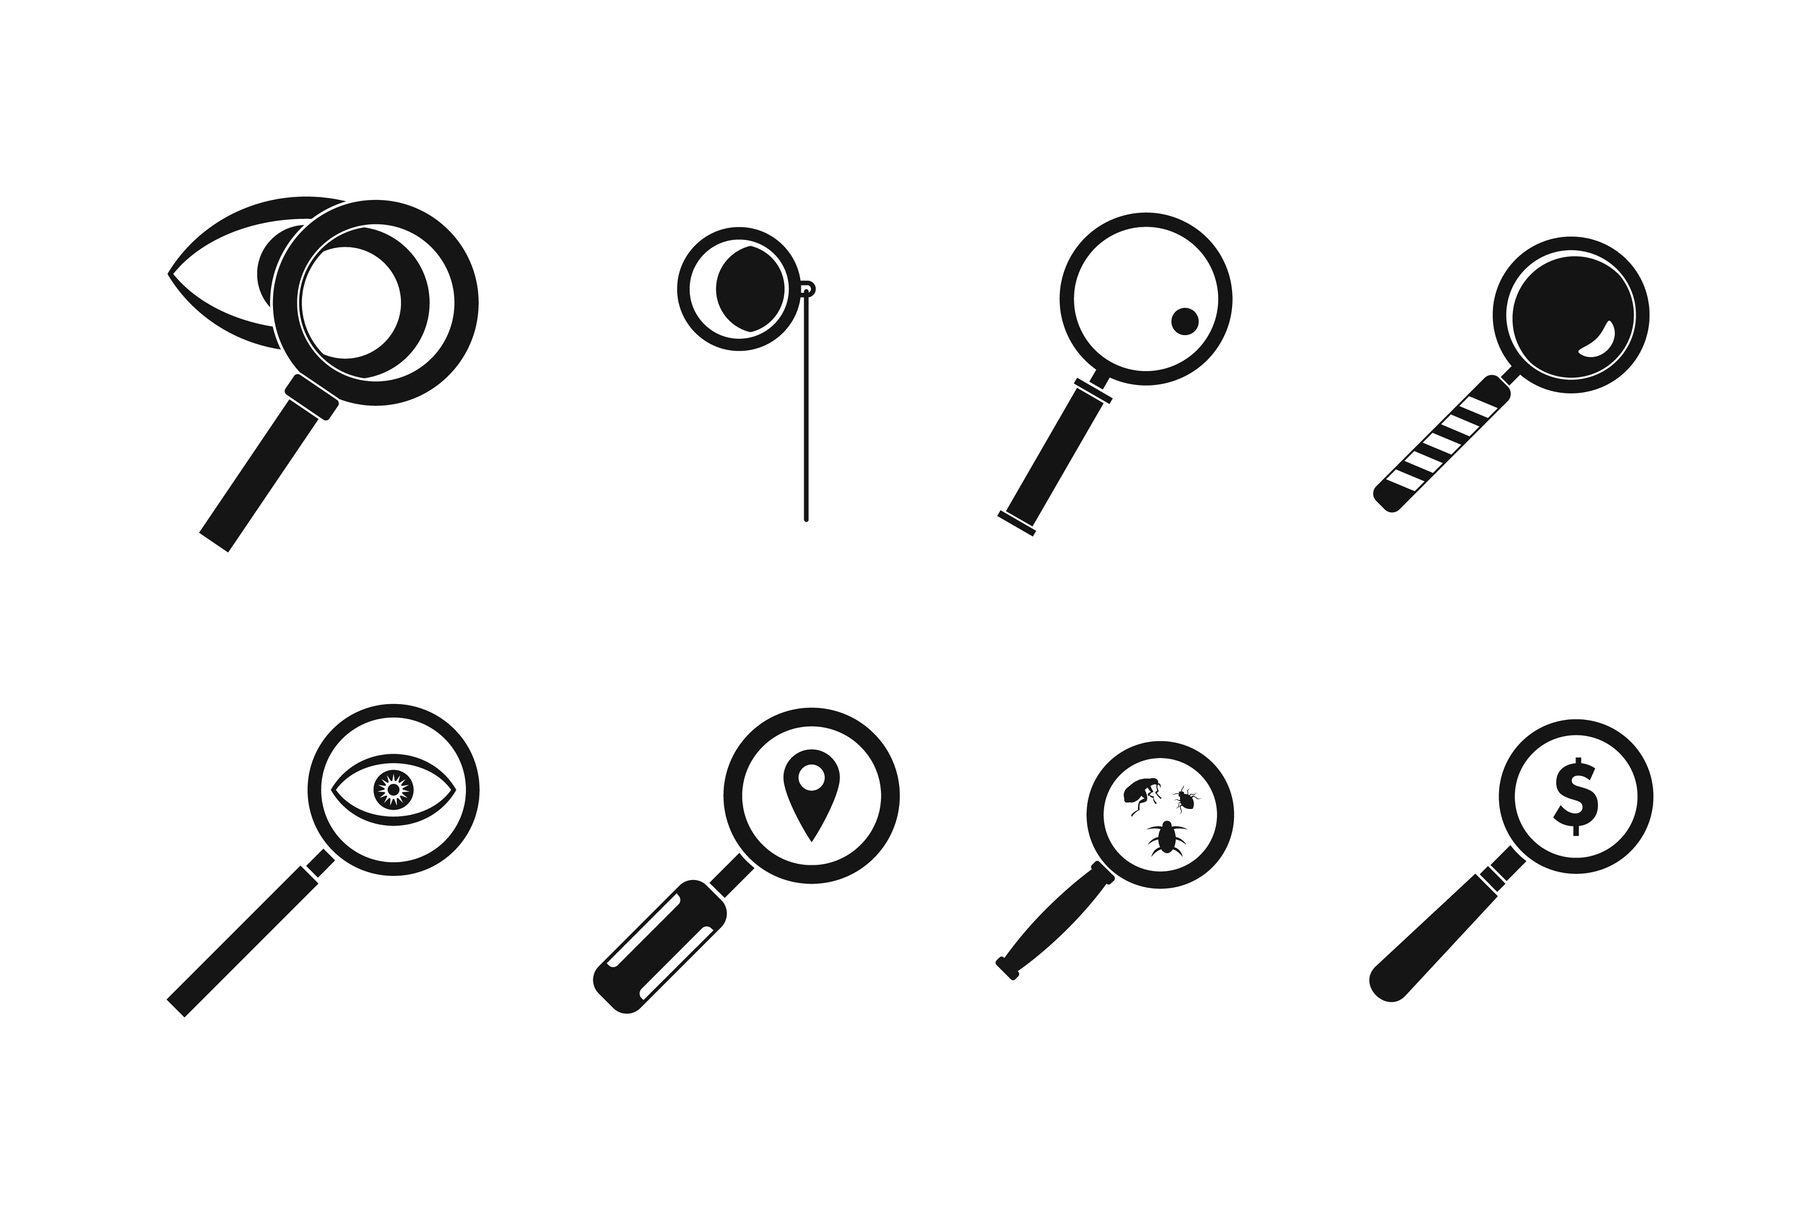 Magnifying glass icon set, simple style example image 1